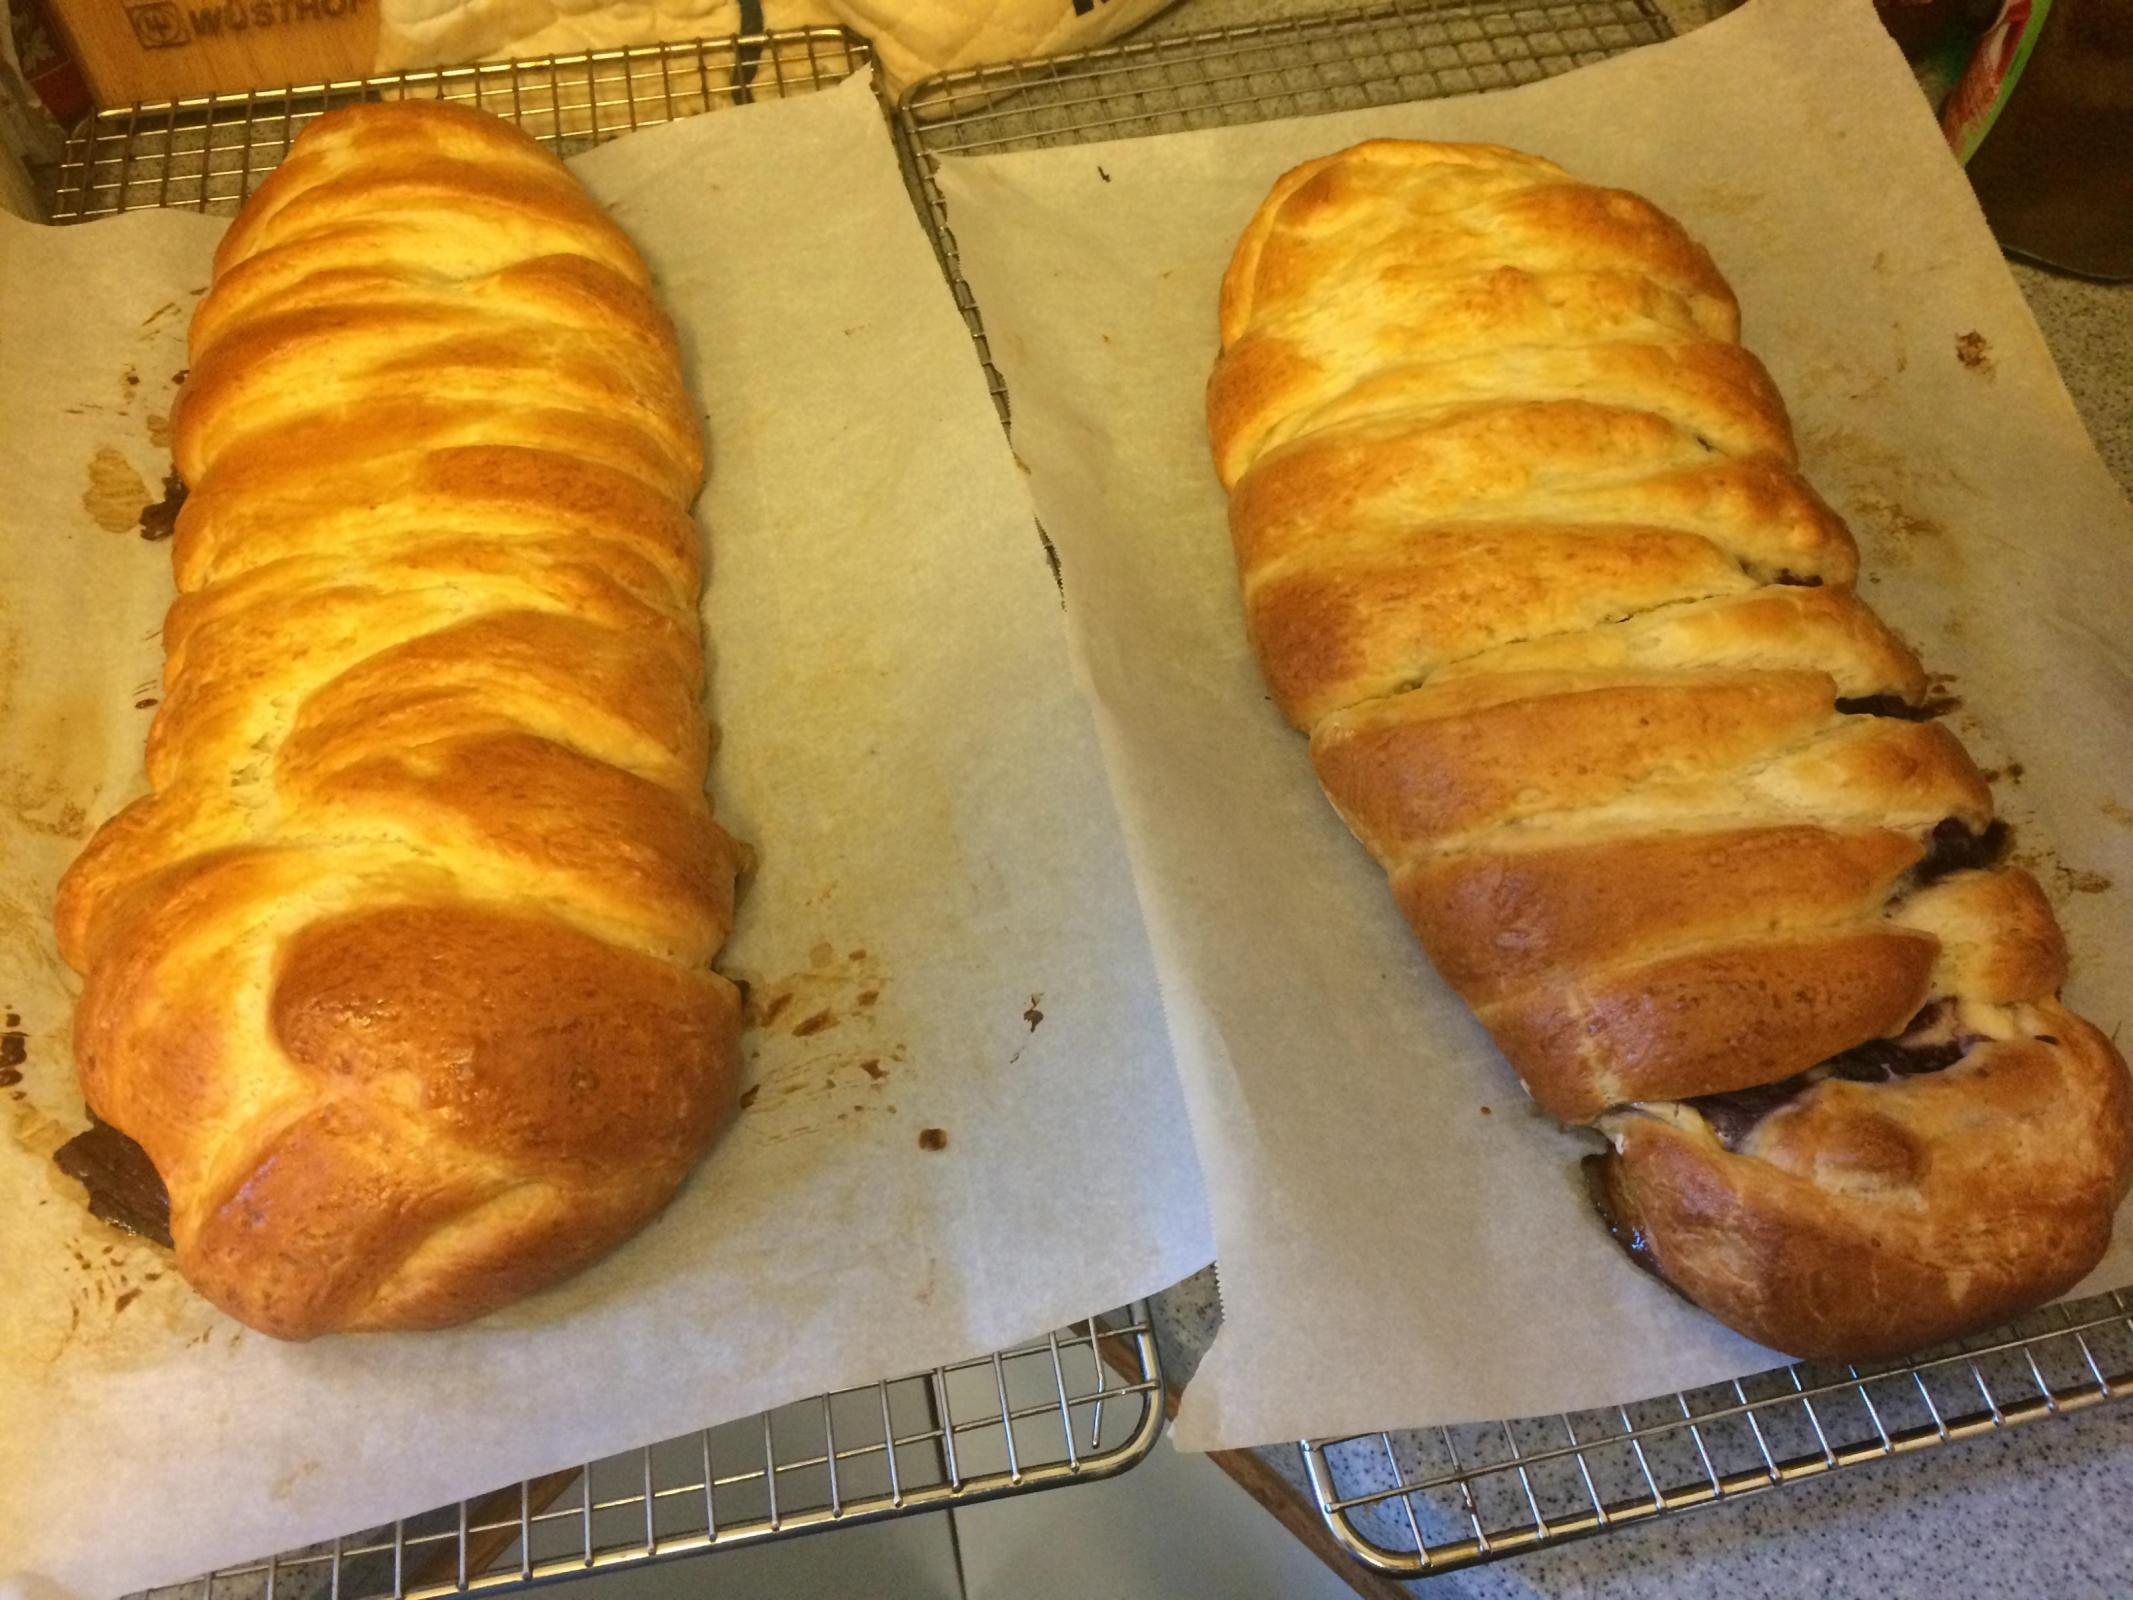 Blueberry cream cheese braids